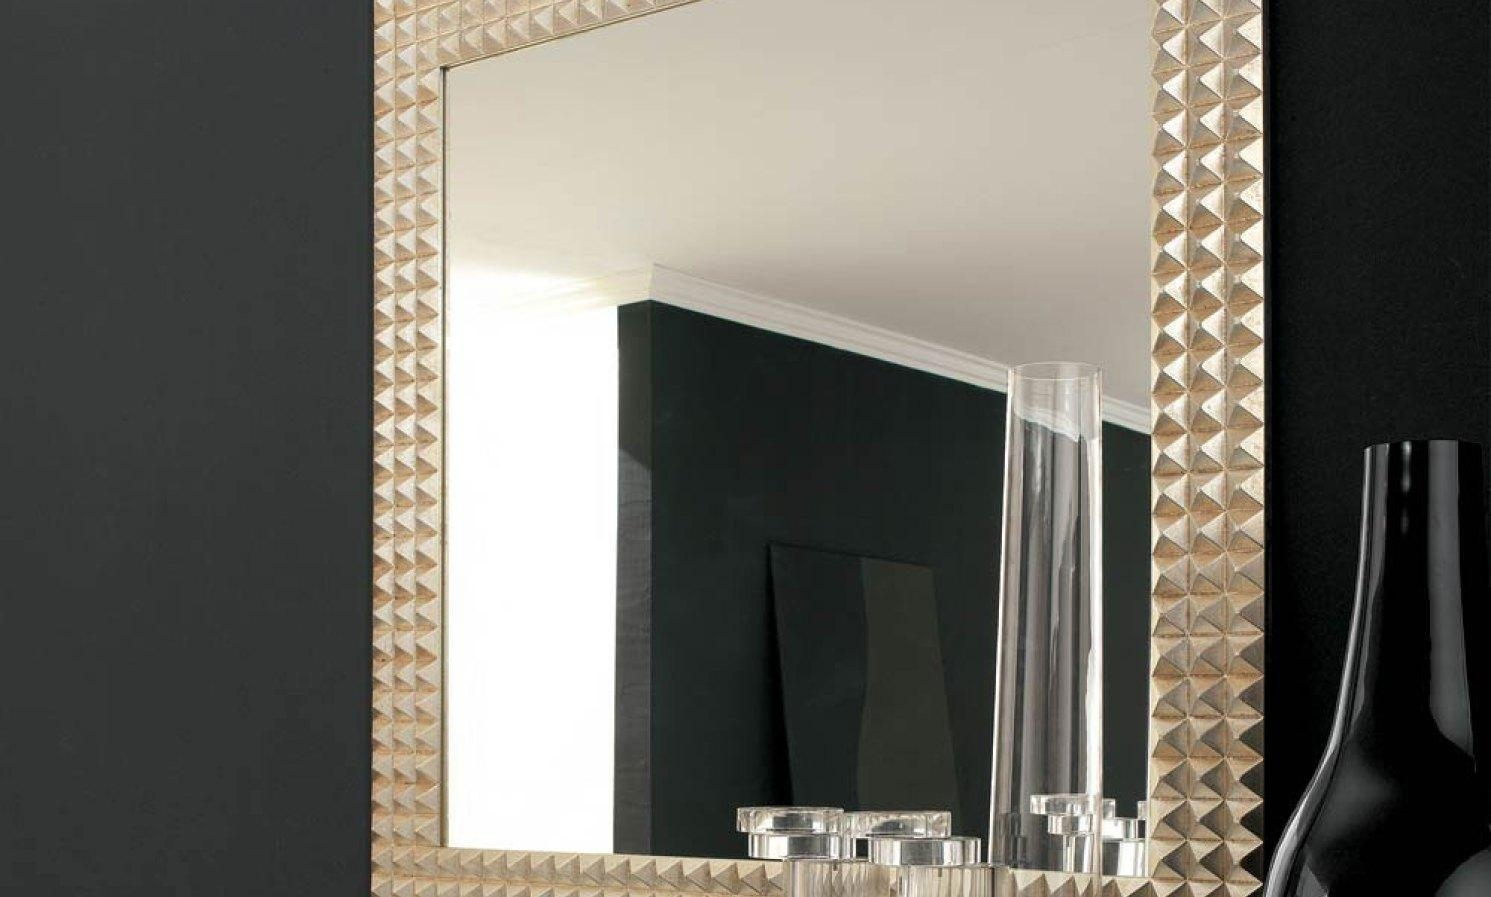 Ravishing Image Of Mirror 50X70 Fantastic Mirror Cast App Regarding Custom Framed Mirrors Online (Image 19 of 20)